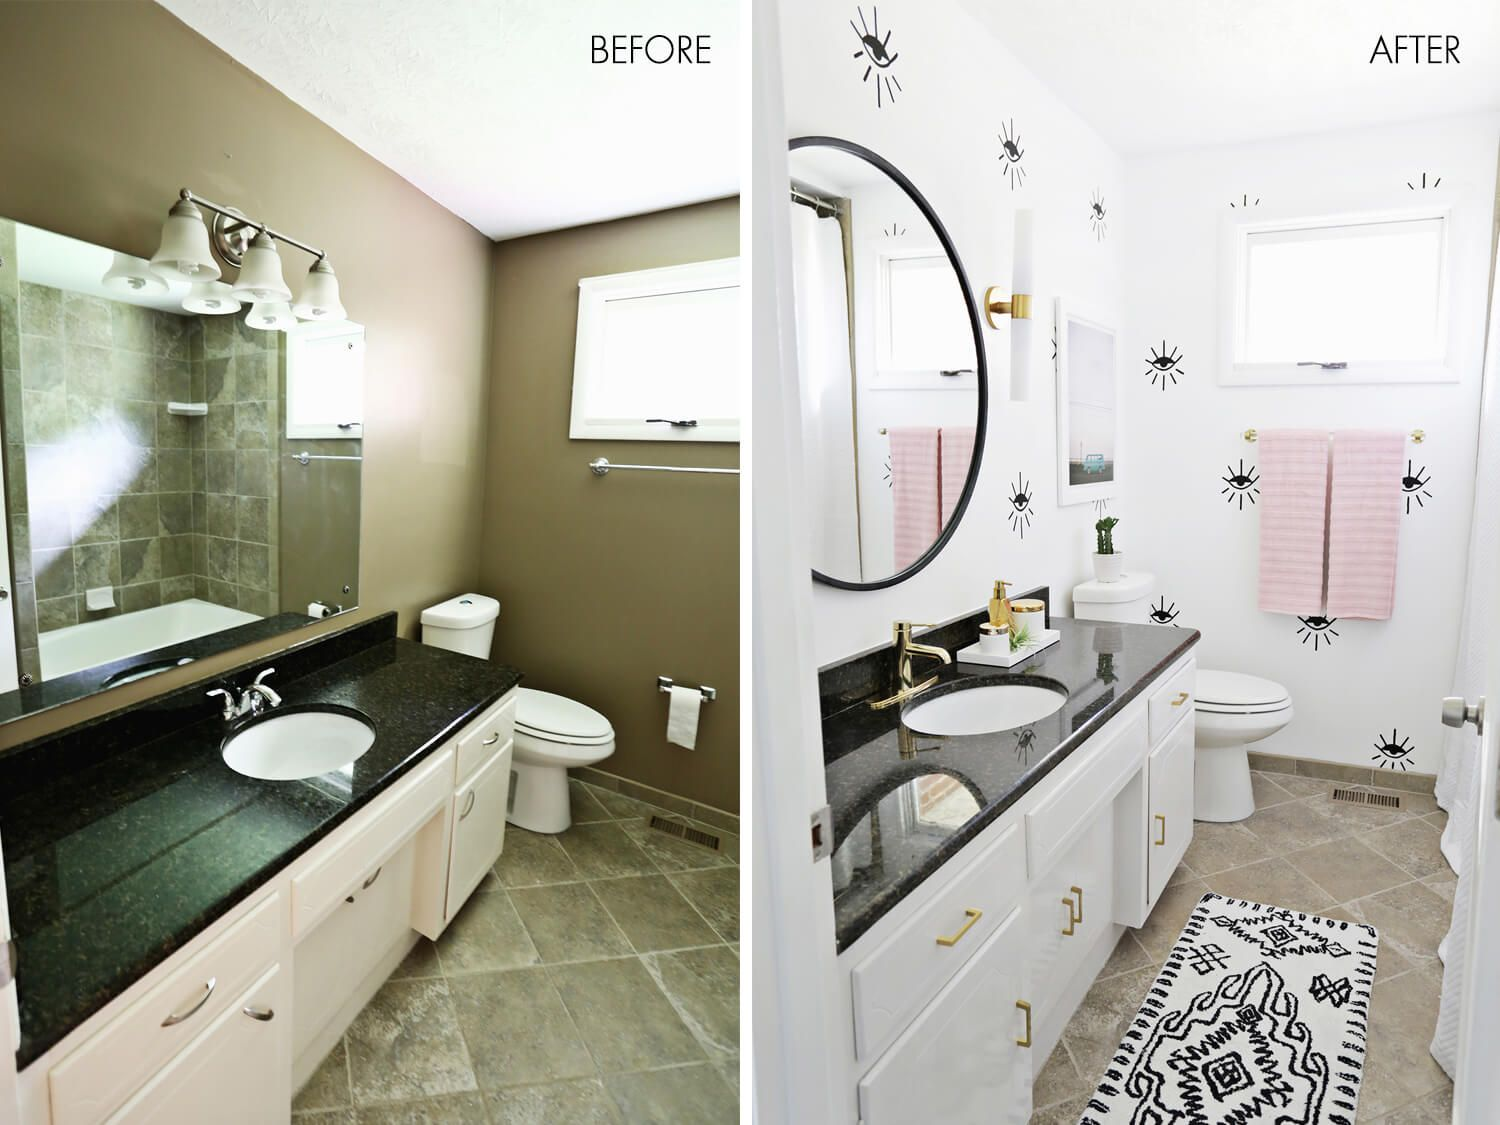 28 Before and After: Budget Friendly Bathroom Makeovers to Inspire ...